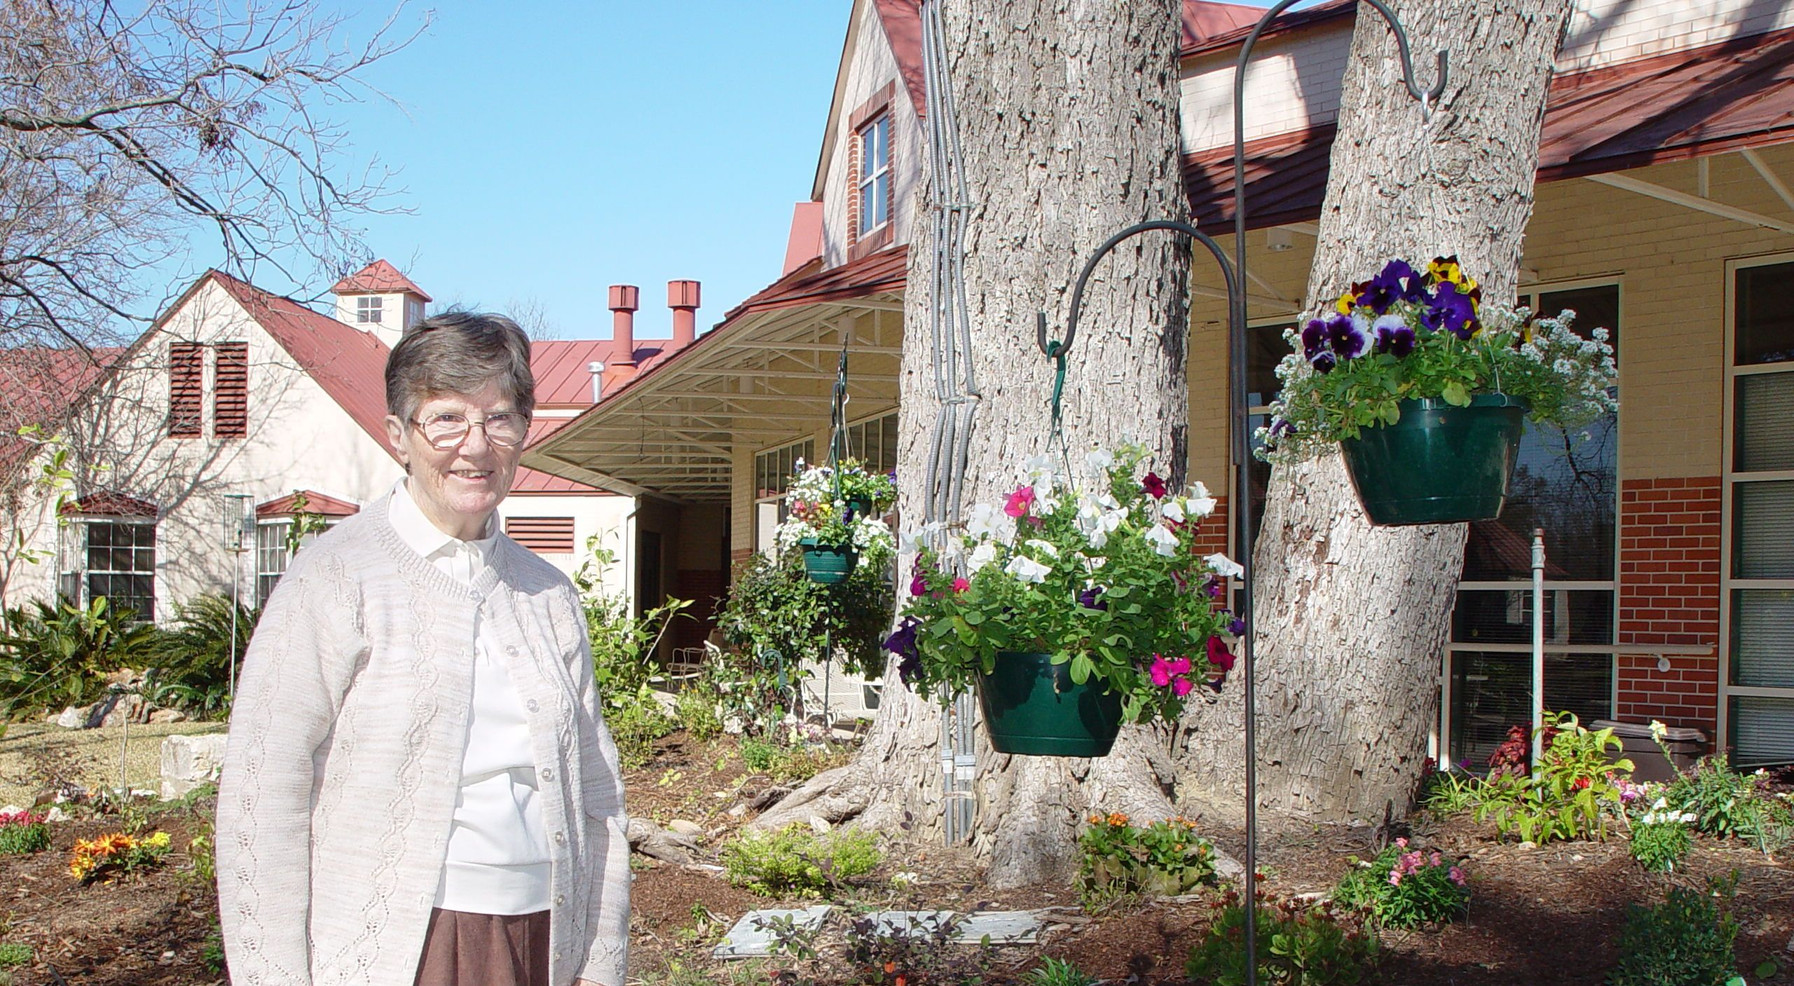 In retirement, Sr. Margaret McCormack planted and maintained a flower garden at the Village at Incarnate Word. It lives on after her death, carefully tended by others, as a celebration of God's gift of creation.